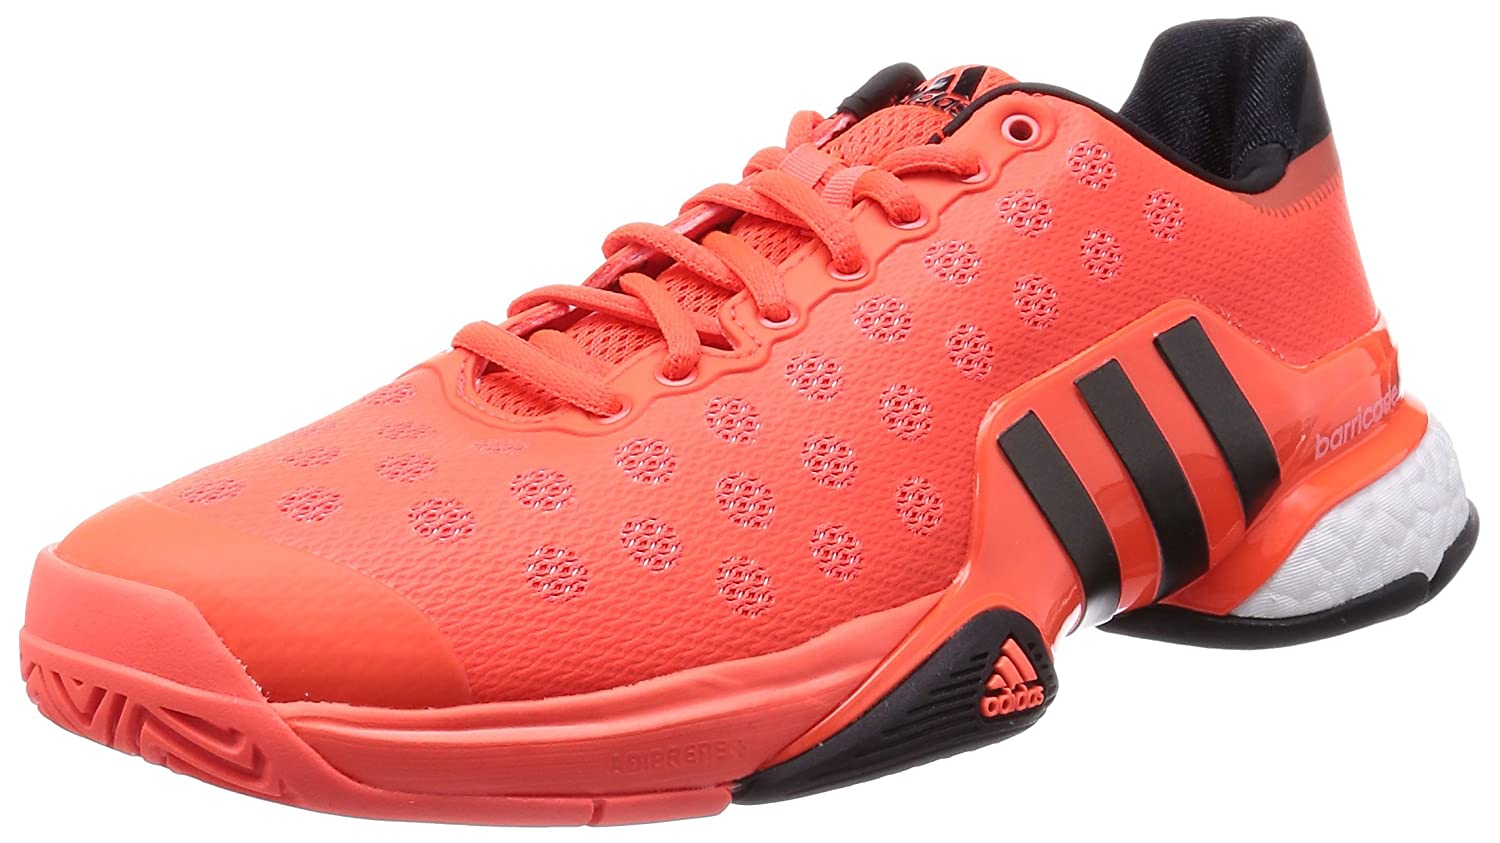 Adidas Barricade 2015 Boost Tennis Shoes - AW15 adidas Performance